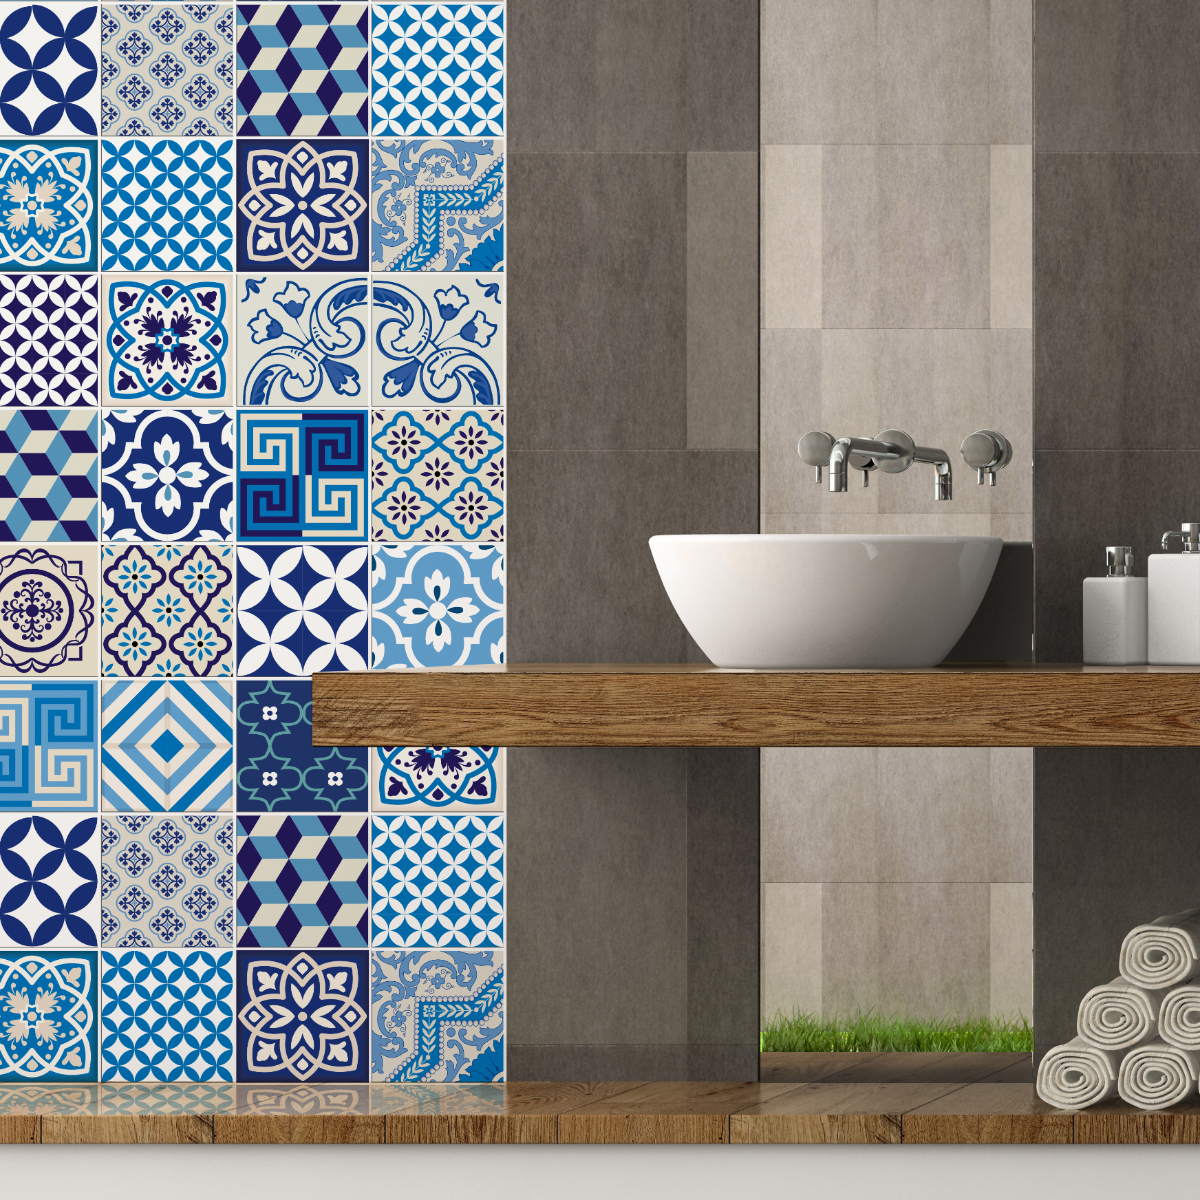 24 stickers carreaux de ciment azulejos lendro cuisine carrelages ambiance sticker. Black Bedroom Furniture Sets. Home Design Ideas